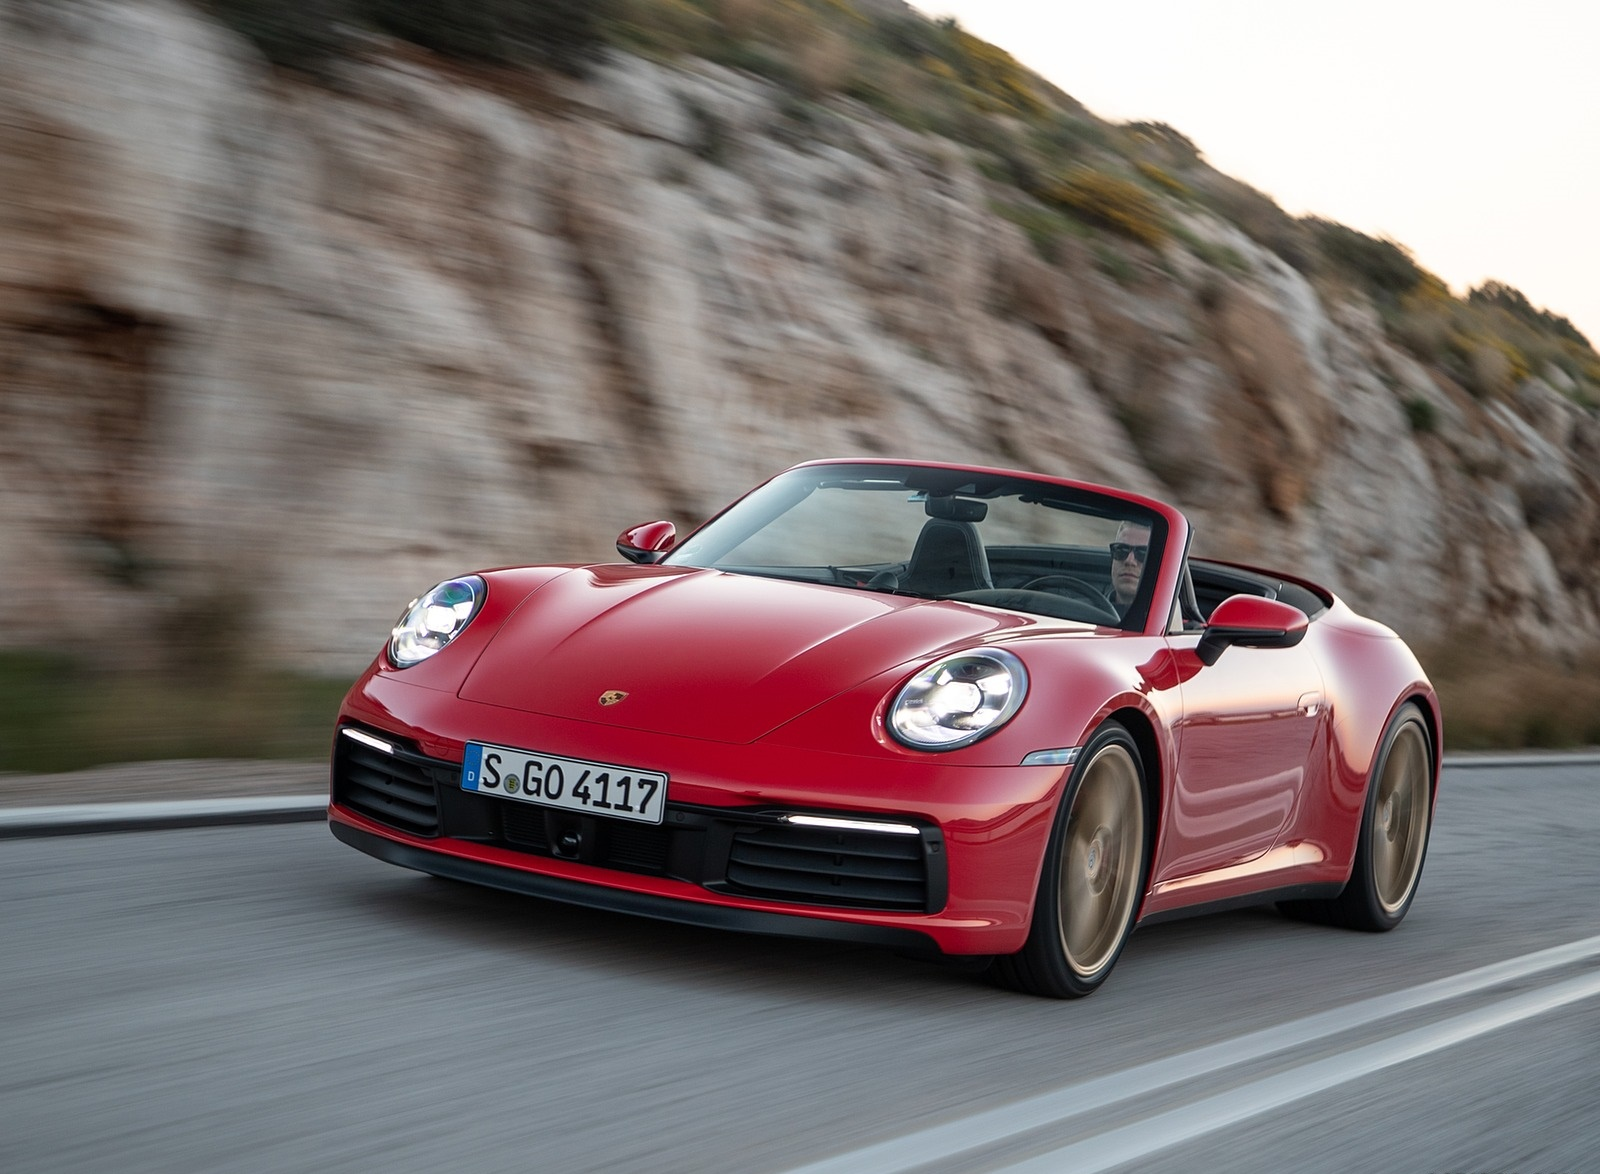 2020 Porsche 911 Carrera 4s Cabriolet Color India Red Front Three Quarter Wallpapers 52 Newcarcars